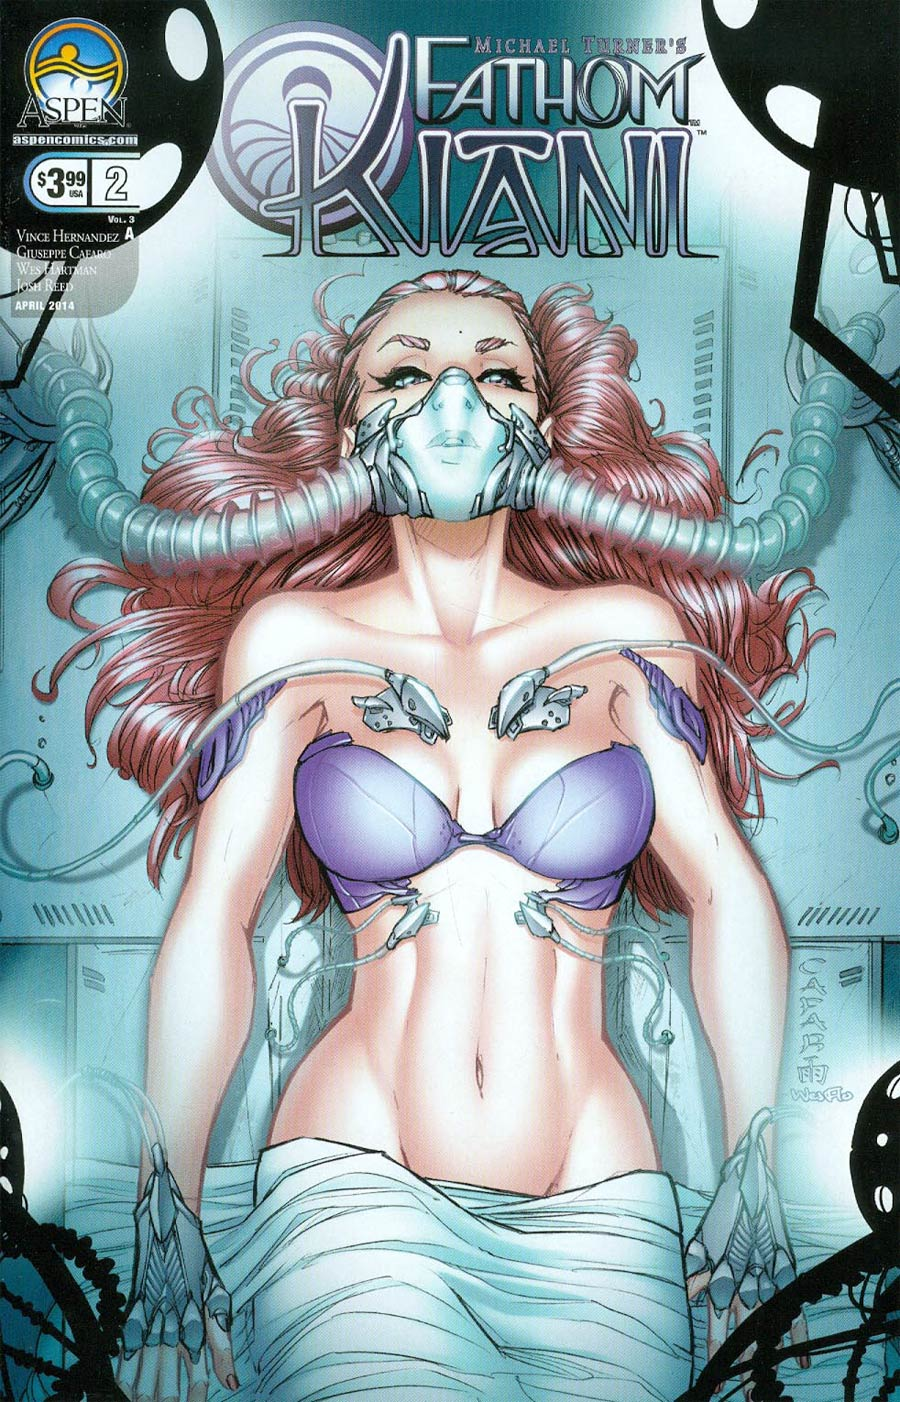 Fathom Kiani Vol 3 #2 Cover A Regular Giuseppe Cafaro Cover